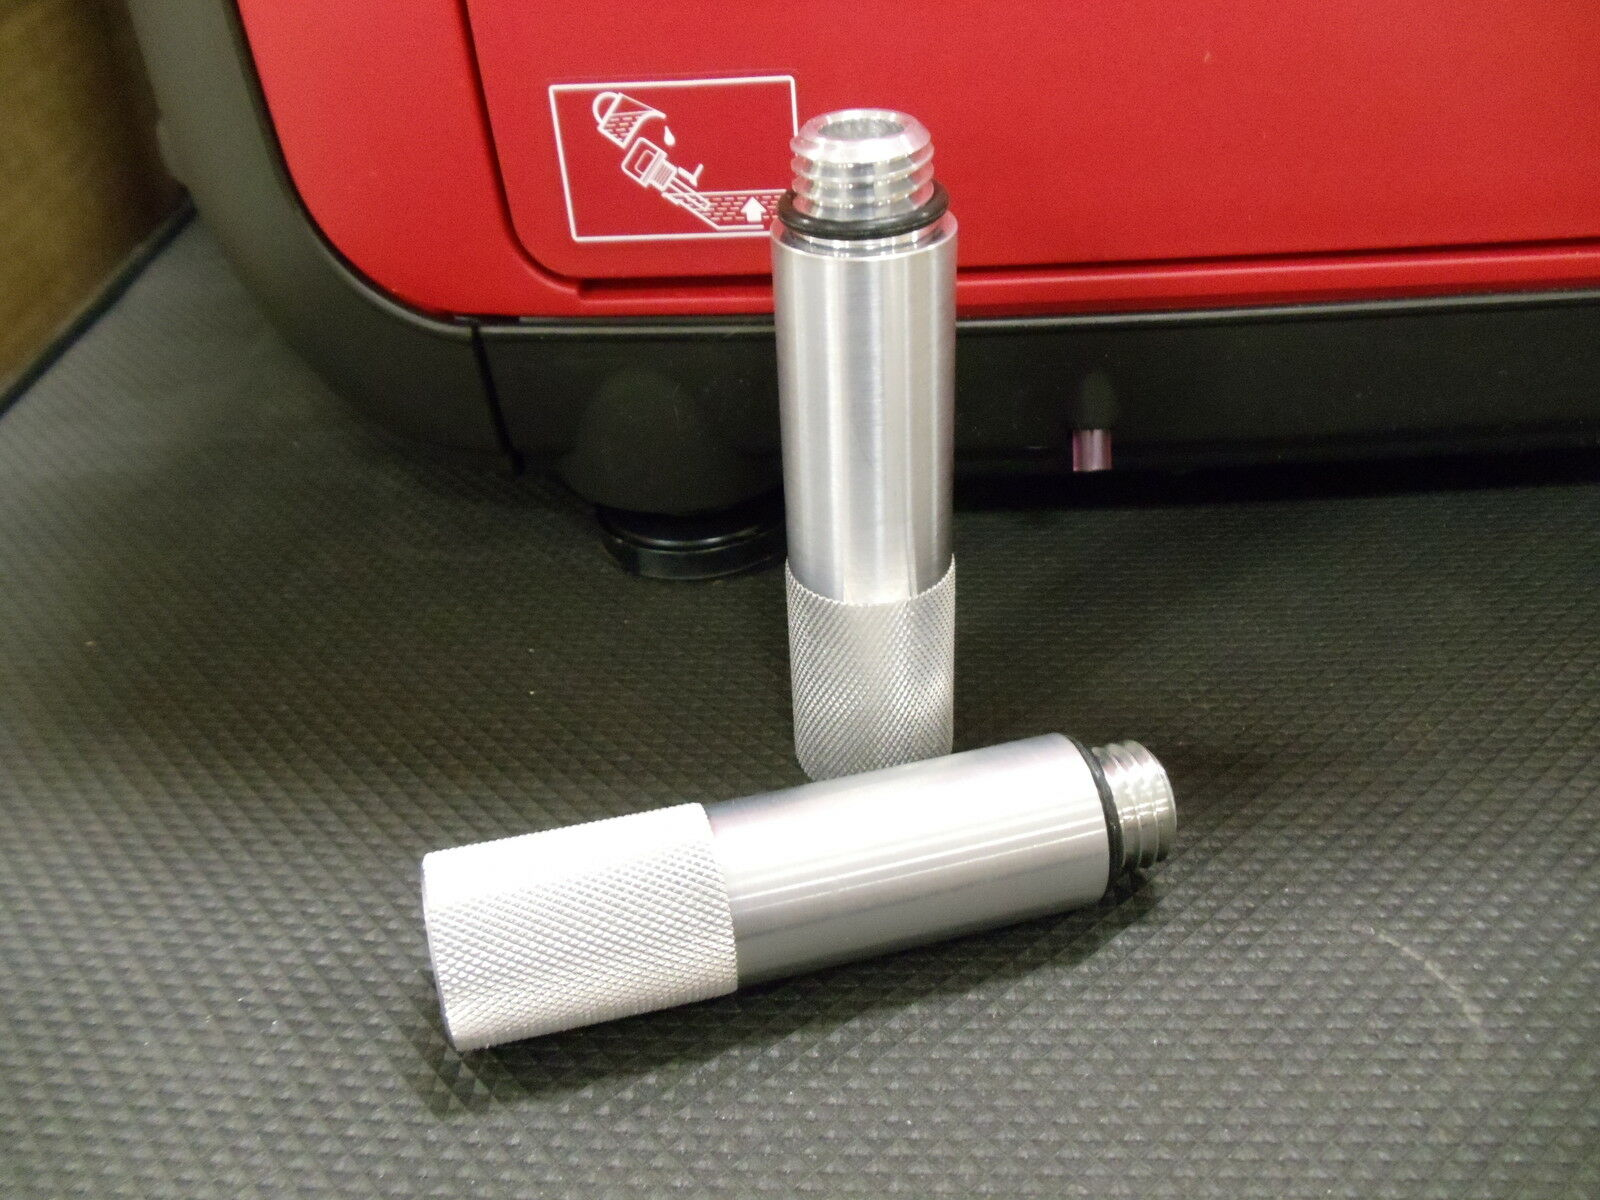 HONDA GENERATOR EU3000iS & HONDA 3000i HANDI - OIL CHANGE TUBE/FUNNEL • $14.95 - PicClick